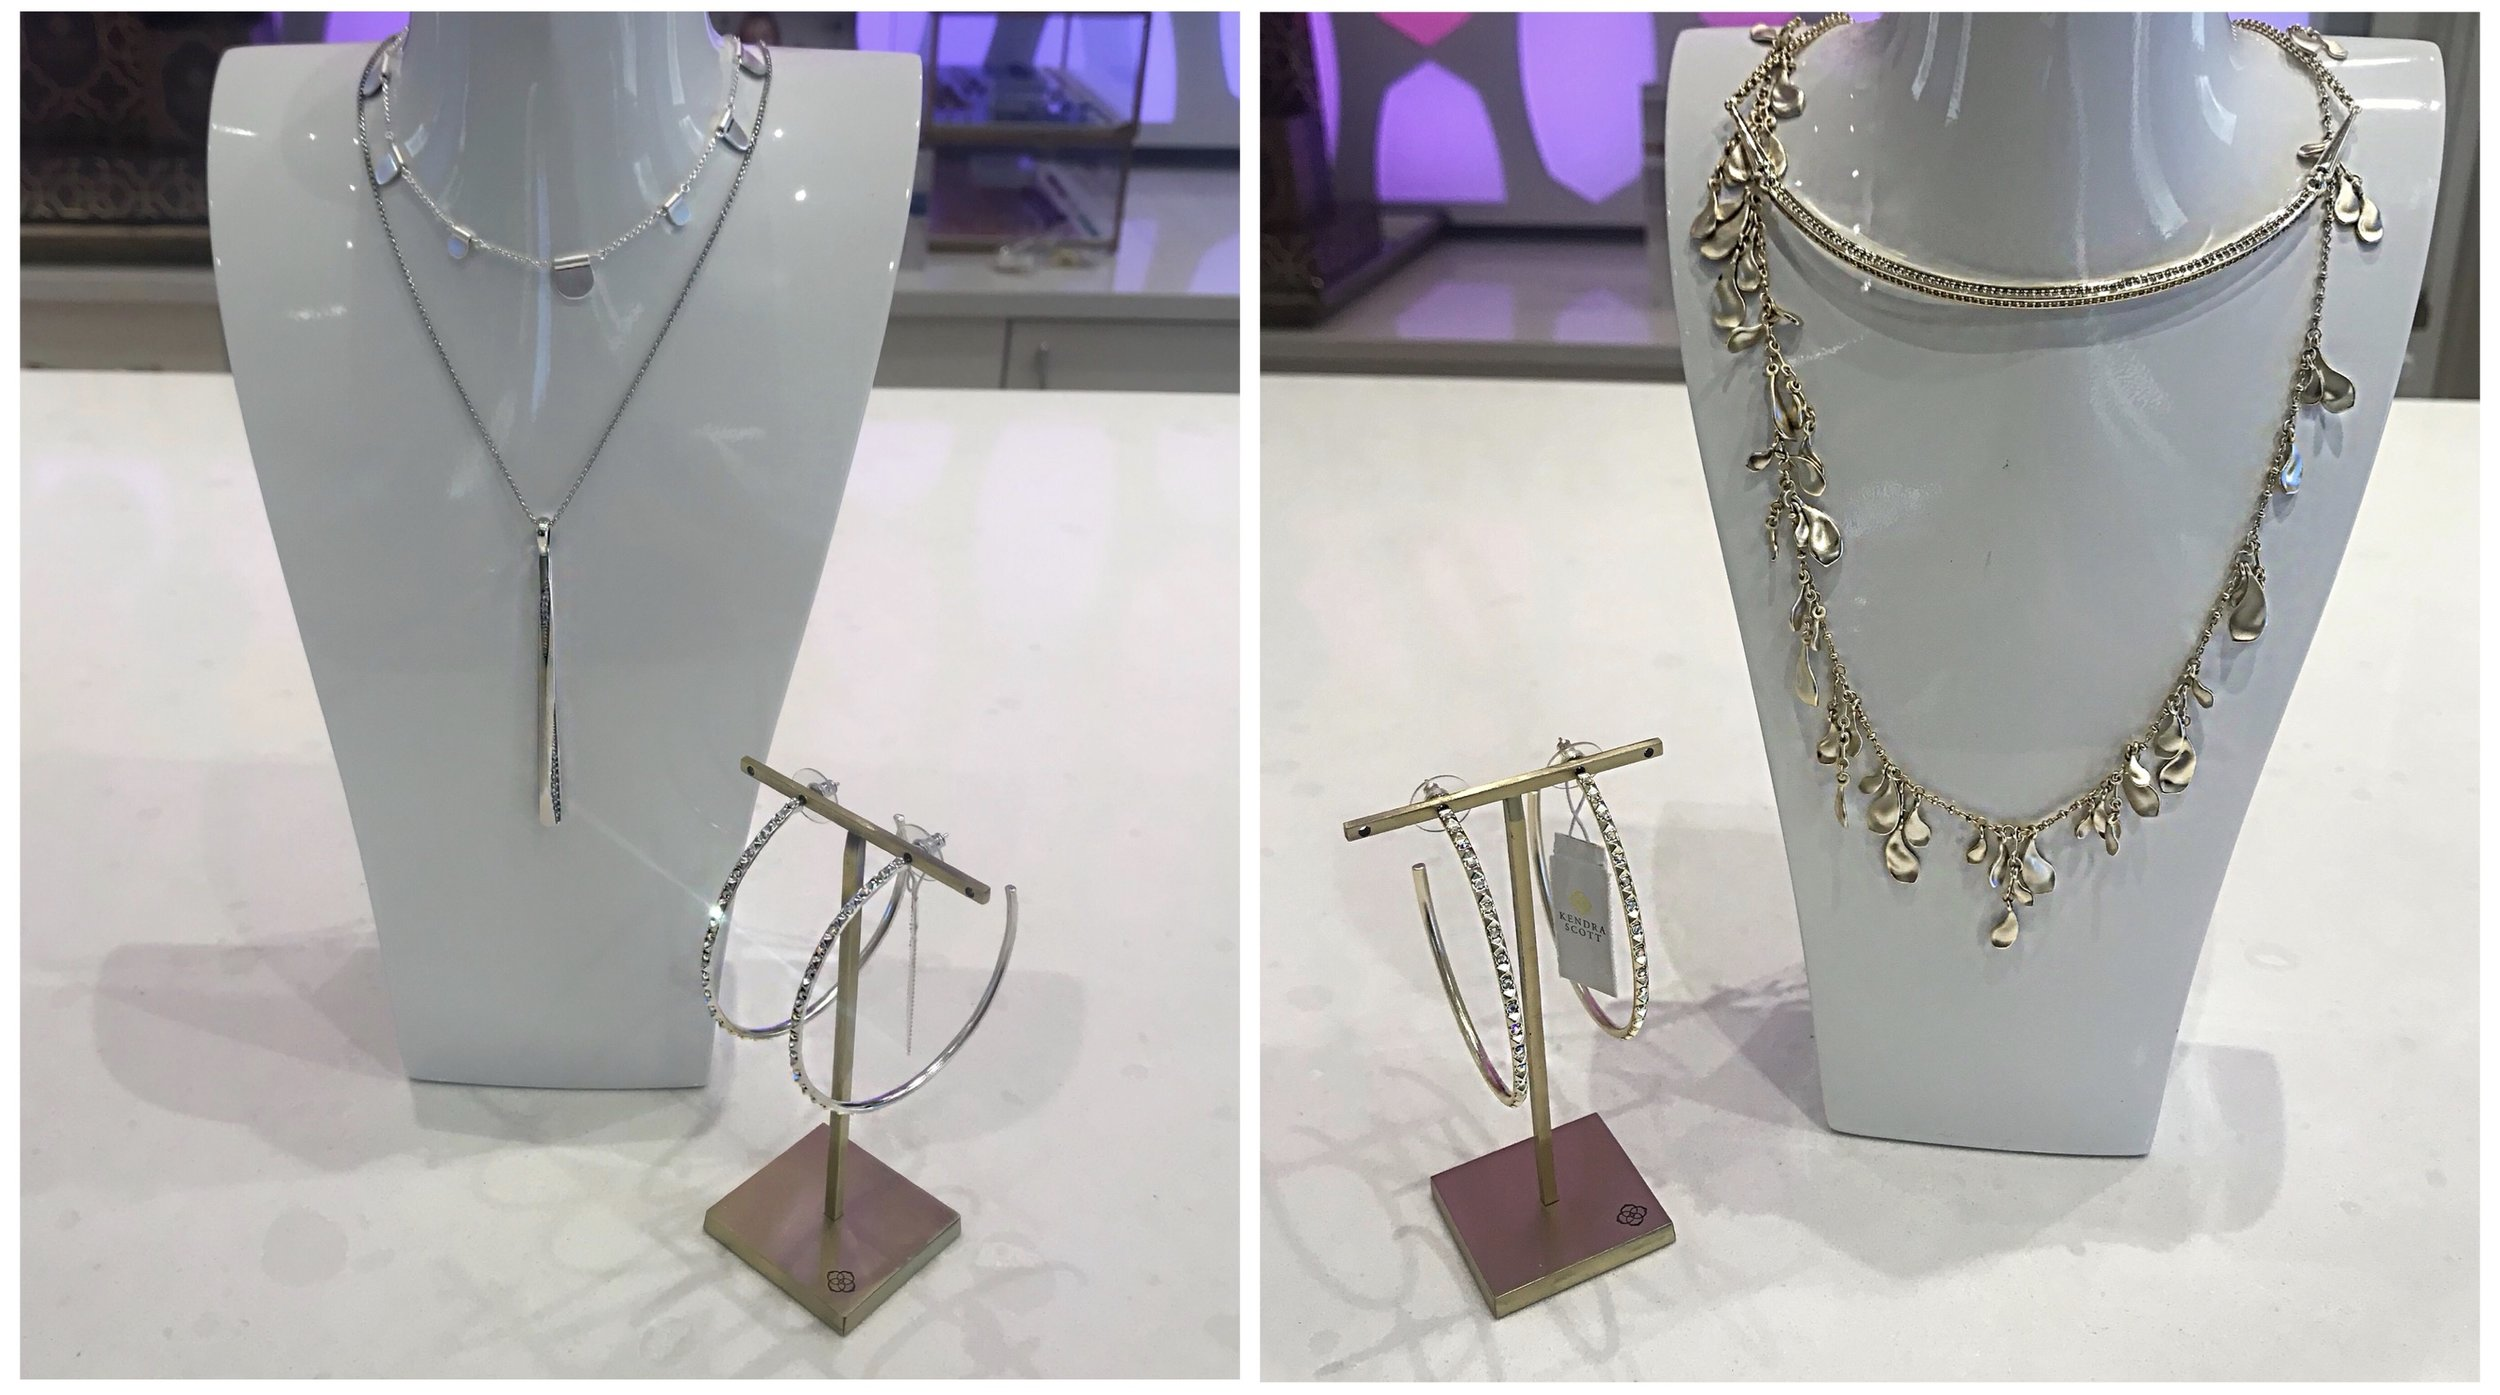 On left, silver set:  OLIVE LONG NECKLACE IN BRIGHT SILVER ,  R  O LONG PENDANT NECKLACE IN SILVER , and  VAL SILVER HOOP EARRINGS IN IRIDESCENT CRYSTAL . On right, gold set:  GOLDIE GOLD CHOKER NECKLACE IN GOLD FILIGREE ,  BELLA LONG NECKLACE IN GOLD , and  VAL GOLD HOOP EARRINGS IN IRIDESCENT CRYSTAL .